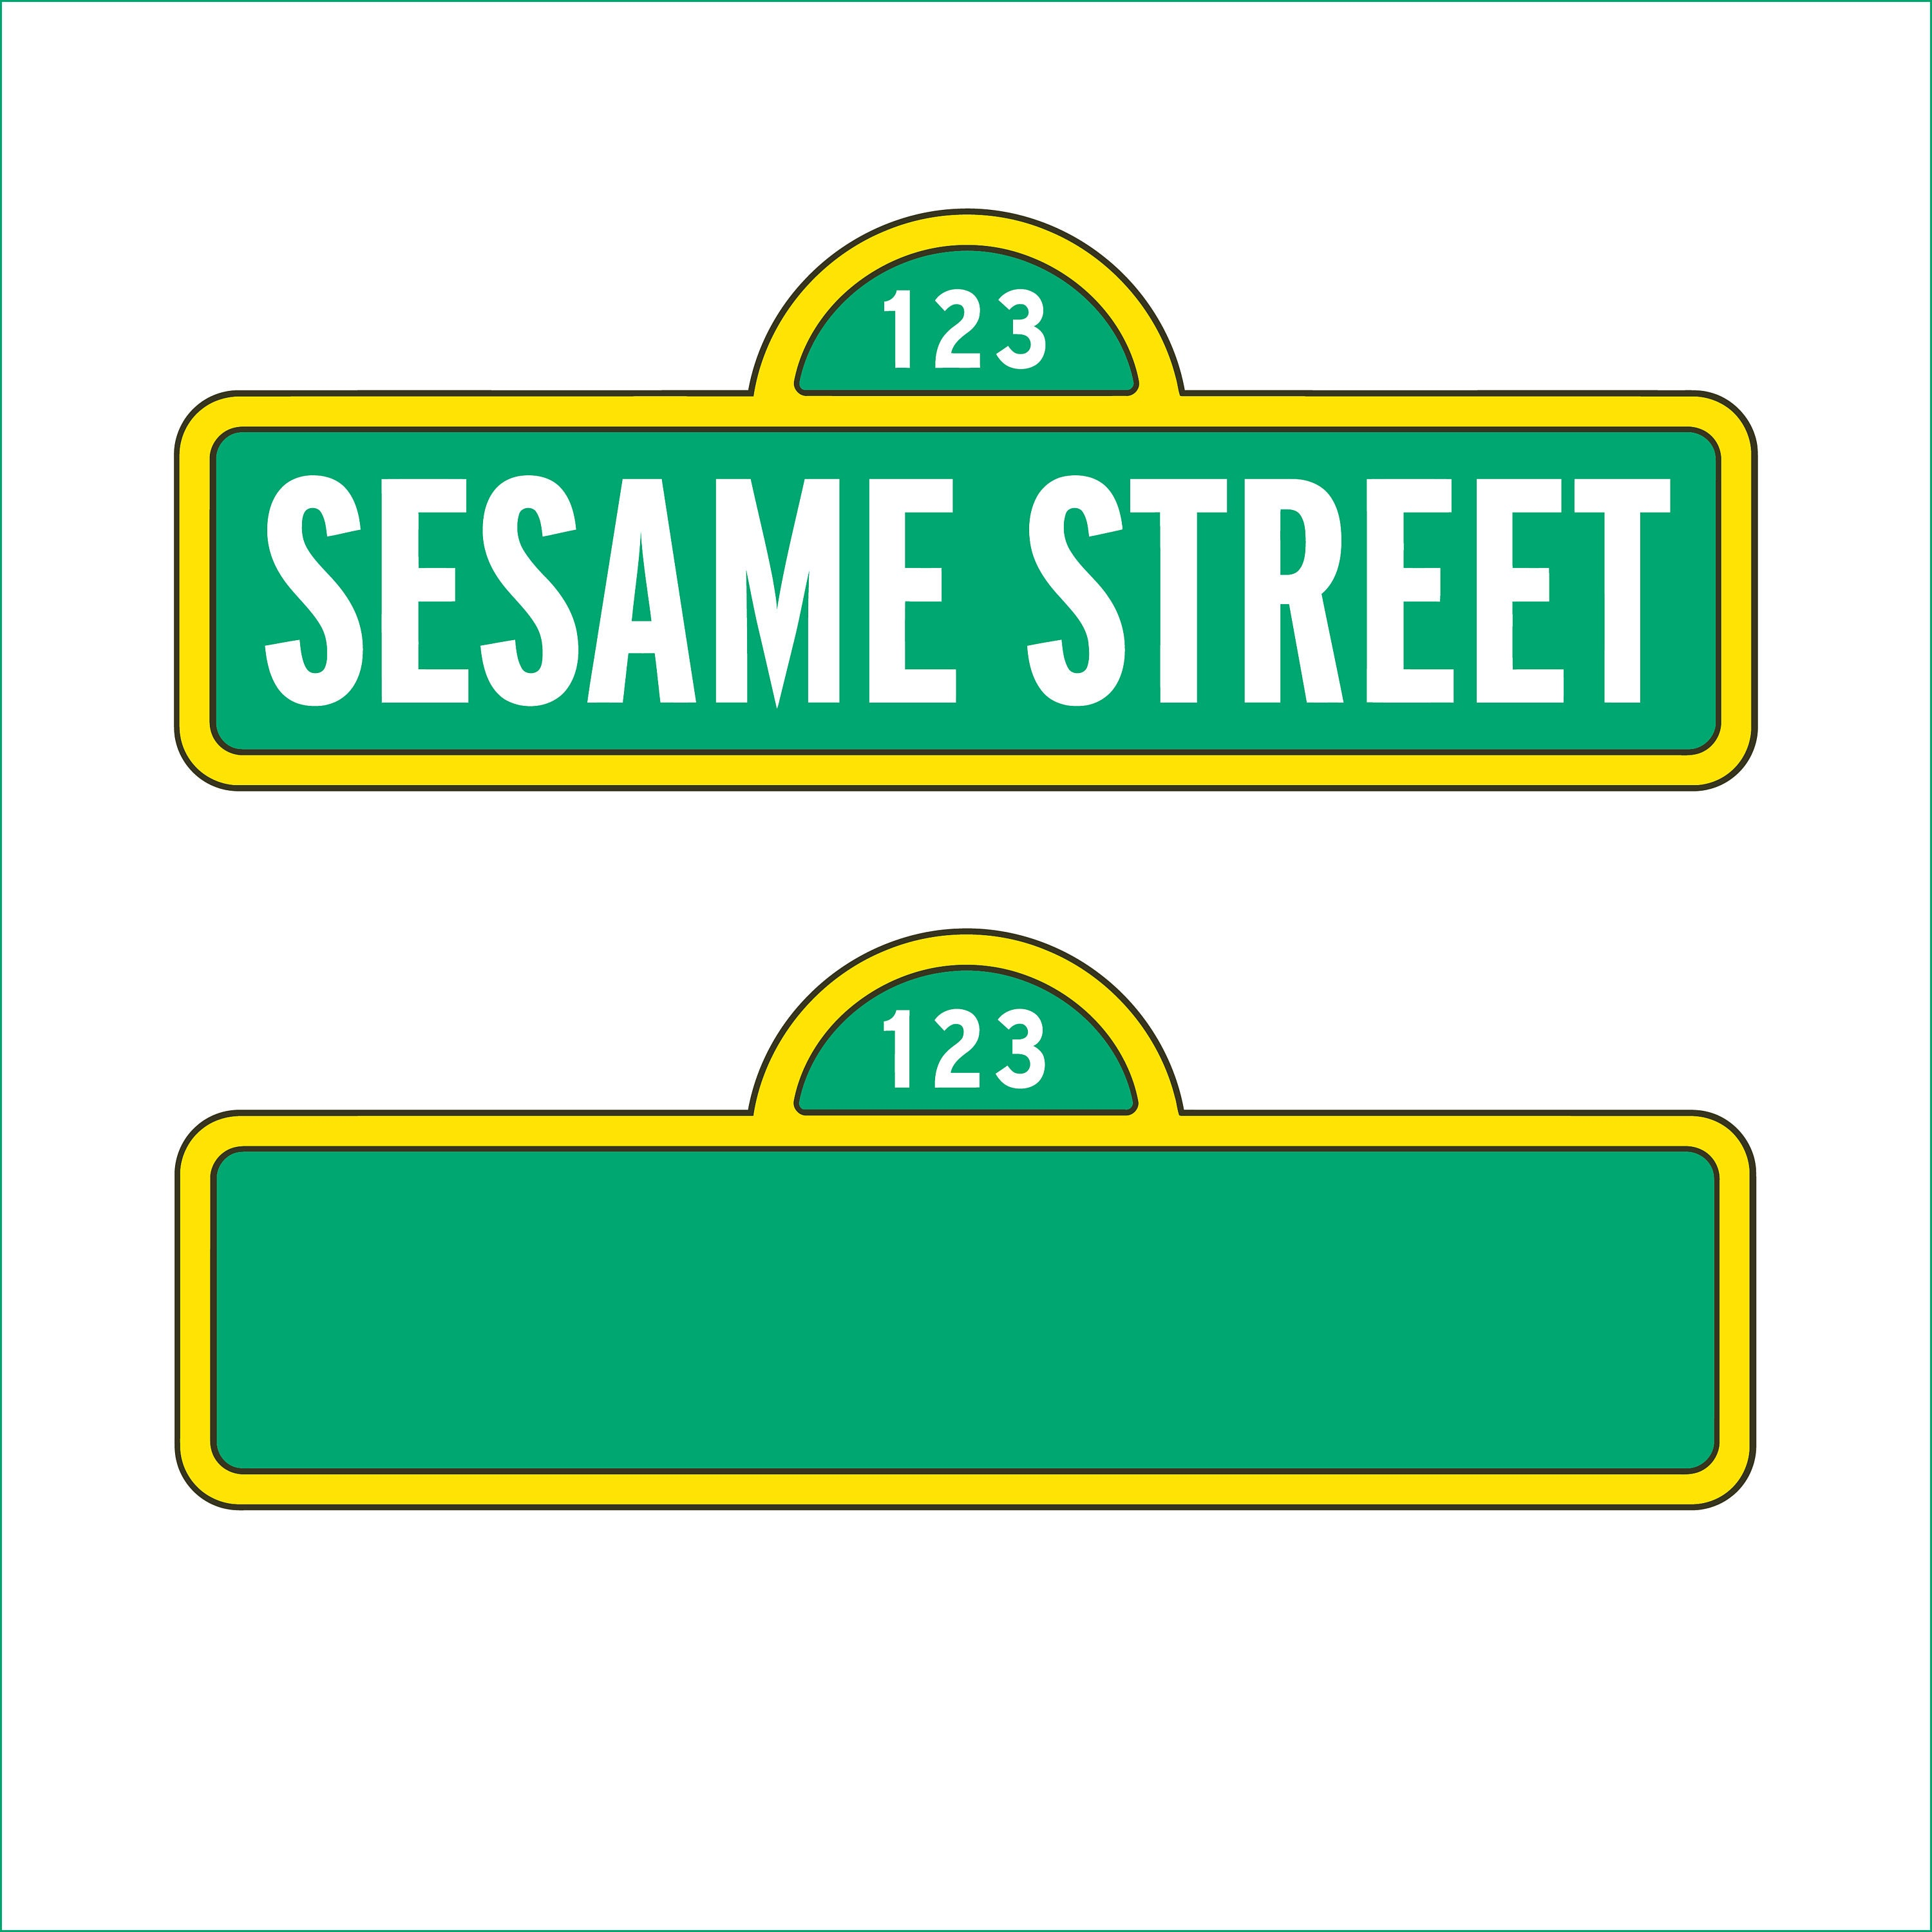 Sesame street sign and blank sign only svg dxf eps png zoom pronofoot35fo Choice Image